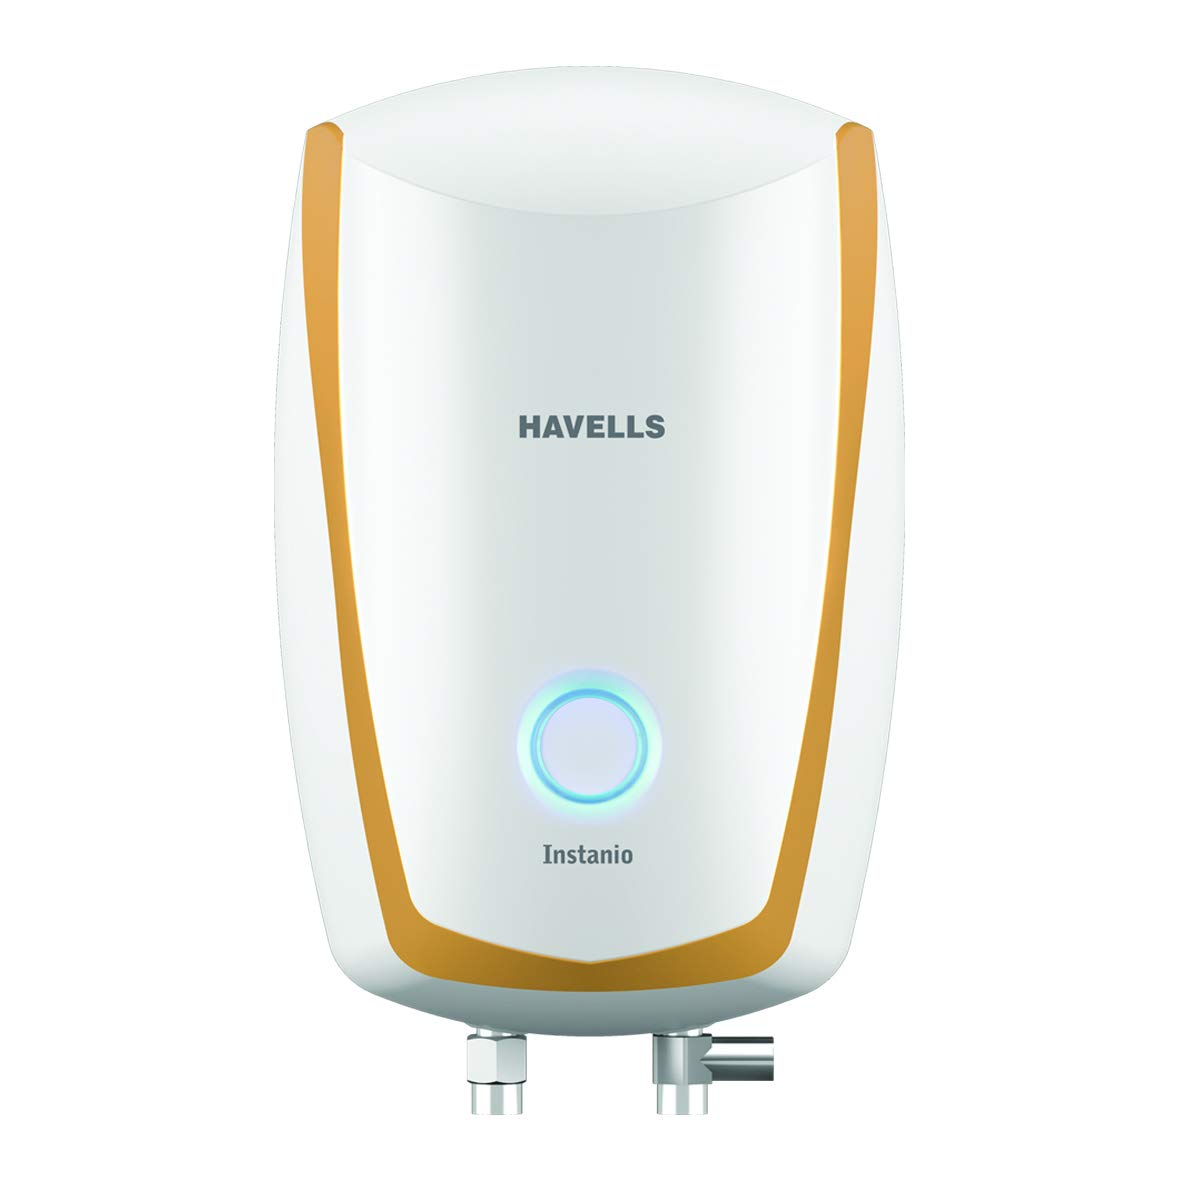 Havells Instanio 3 Litre Instant Water Heater review